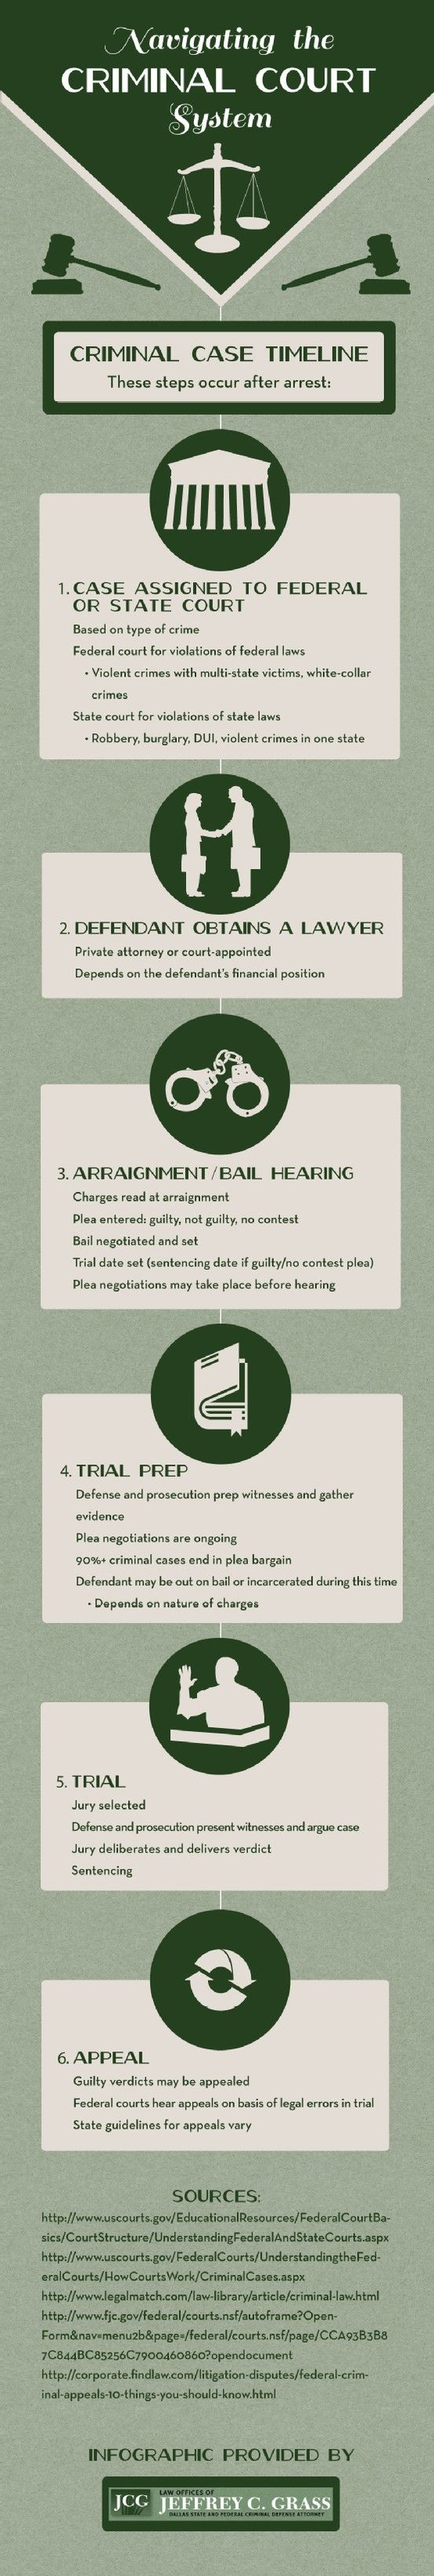 How much do you know about the justice system? Check out this infographic from the Law Offices of Jeffrey C. Grass in Dallas to learn about the judicial system and criminal case proceedings.